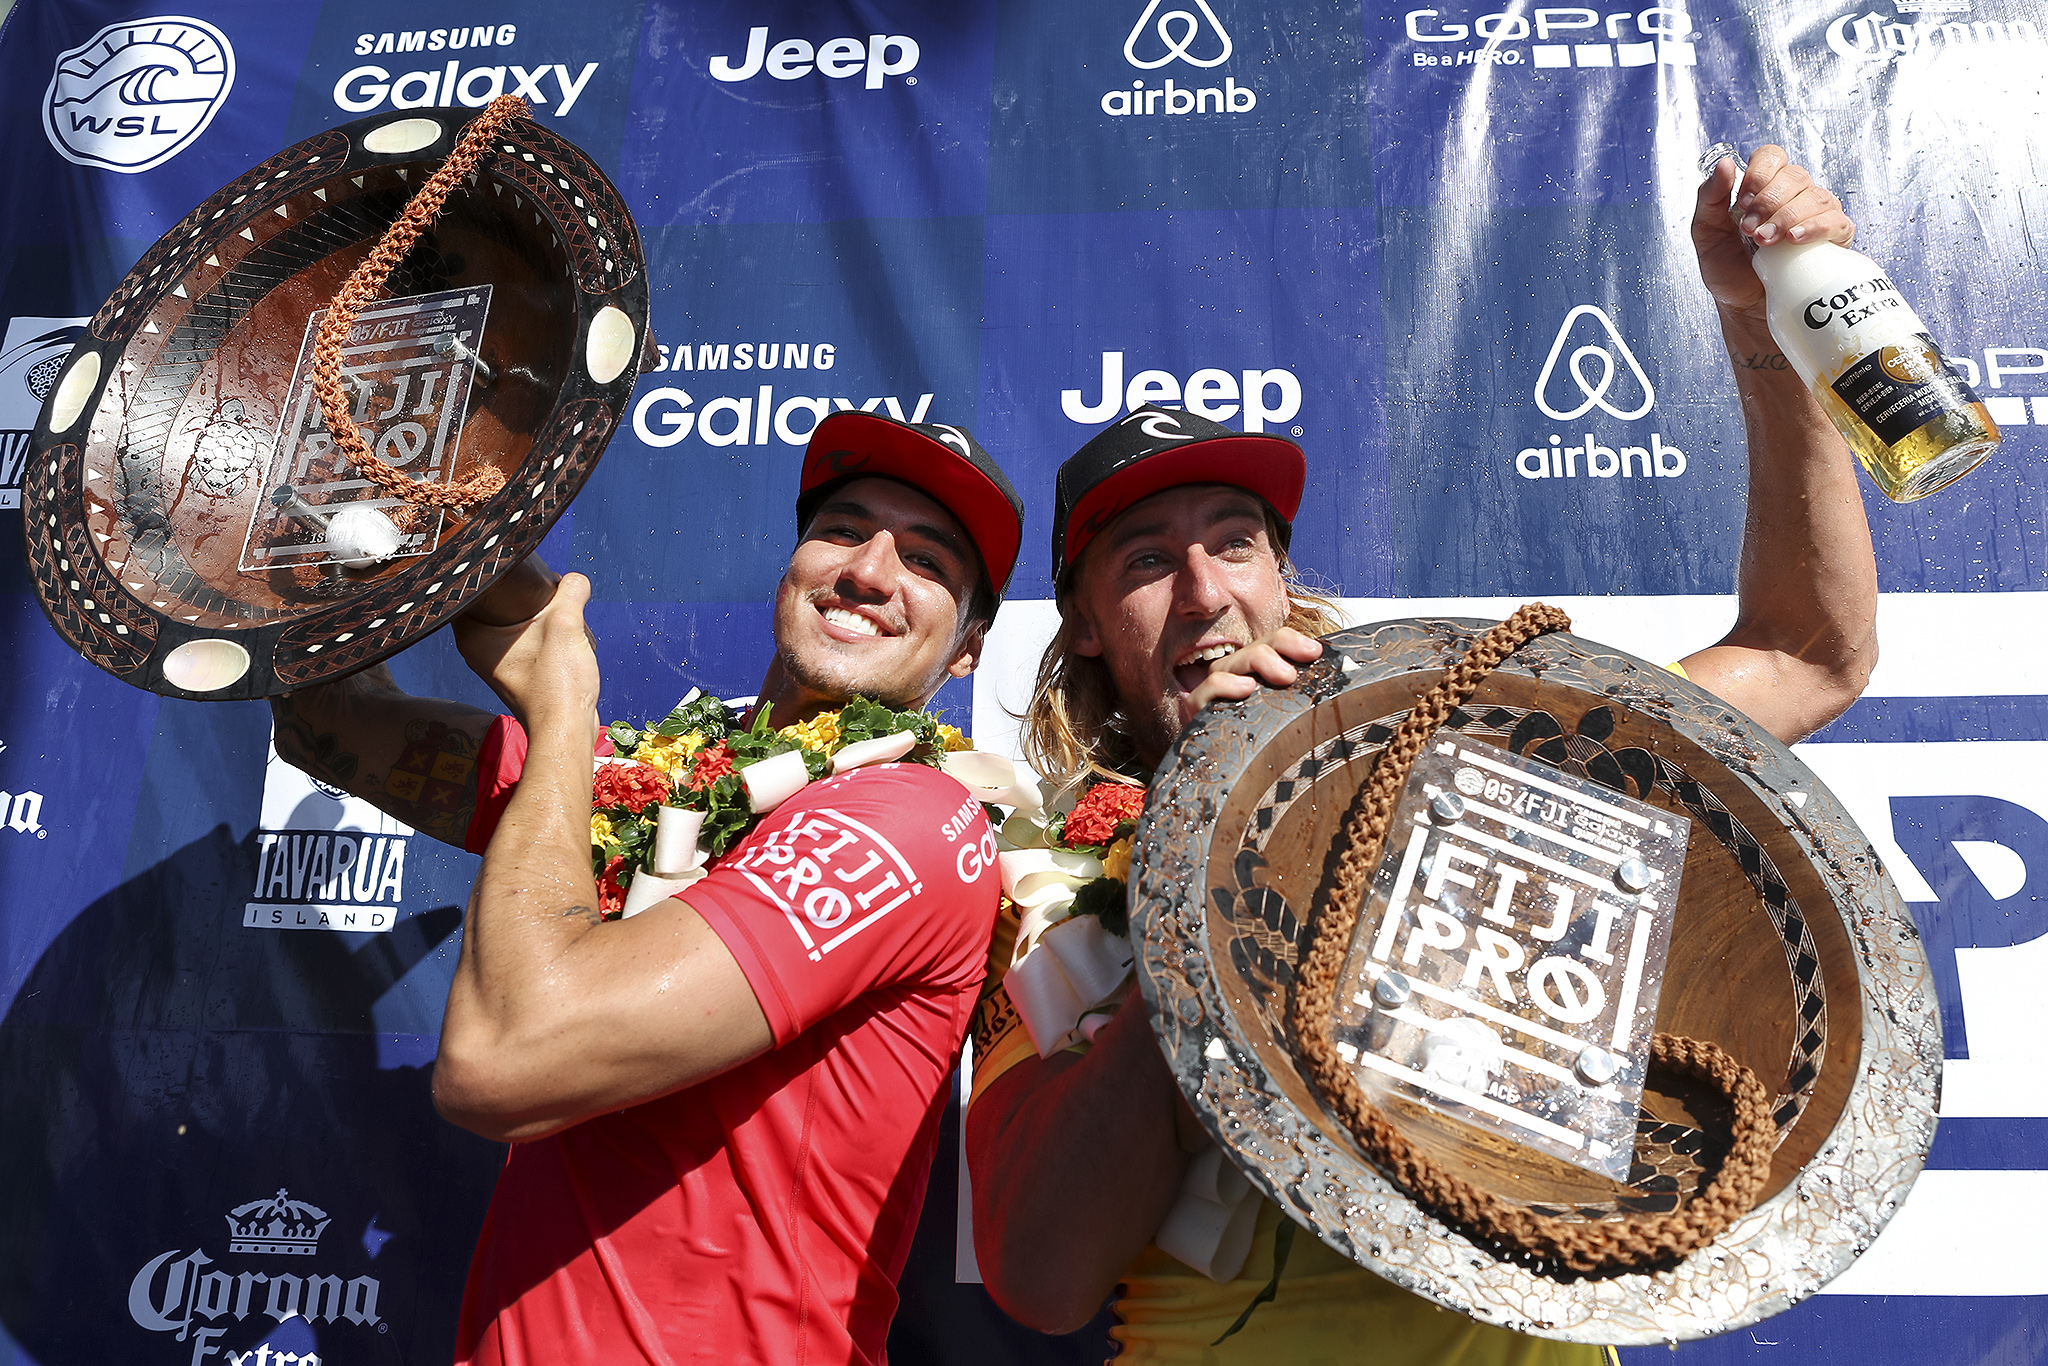 Gabriel Medina is the 2016 Fiji Pro Winner and Matt Wilkinson the runner-up.  Wilkinson retains number one spot on the Jeep Leaderboard while Medina moves in to number two. PHOTO: © WSL/ Cestari SOCIAL: @wsl @kc80 This image is the copyright of  the World Surf League and is provided royalty free for editorial use only, in all media now known or hereafter created. No commercial rights granted. Sale or license of the images is prohibited. This image is a factually accurate rendering of what it depicts and has not been modified or augmented except for standard cropping and toning. ALL RIGHTS RESERVED